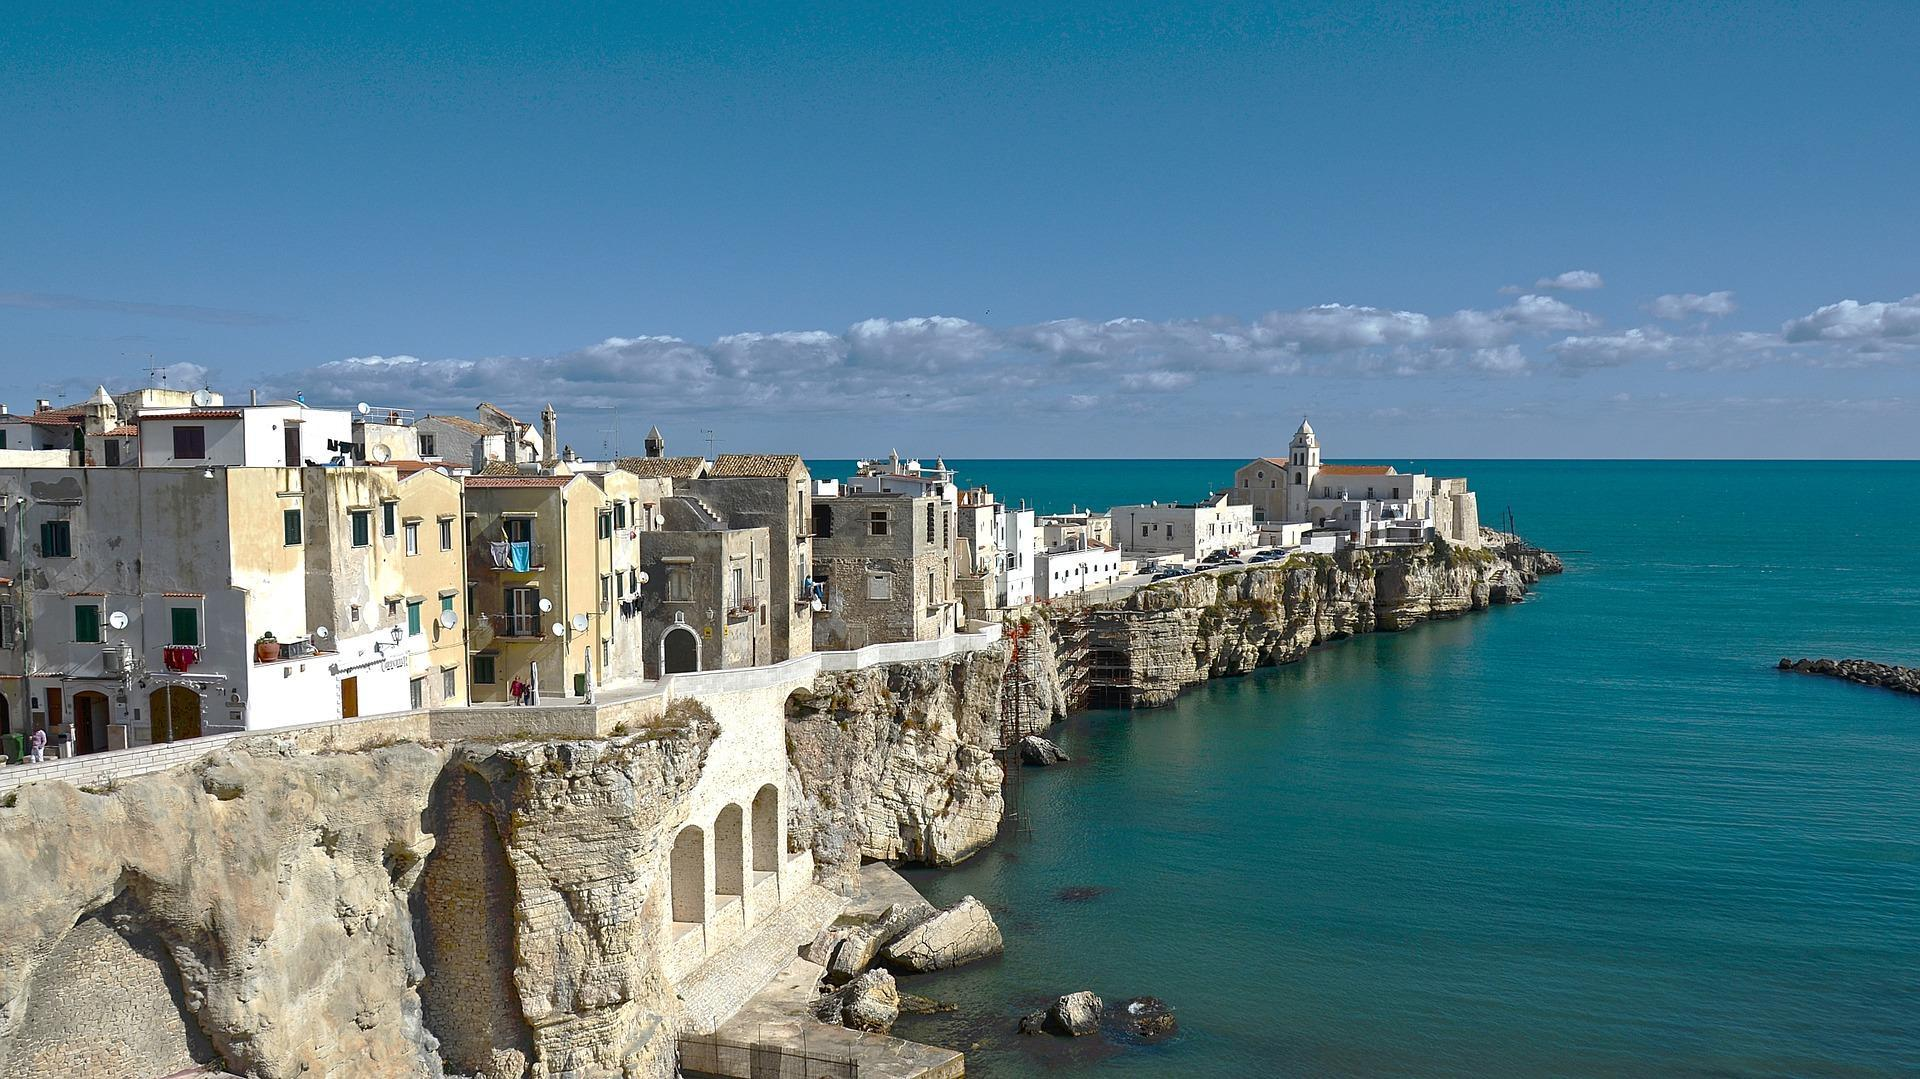 Italian mayor offers €2,000 to anyone willing to live in small idyllic village in Puglia